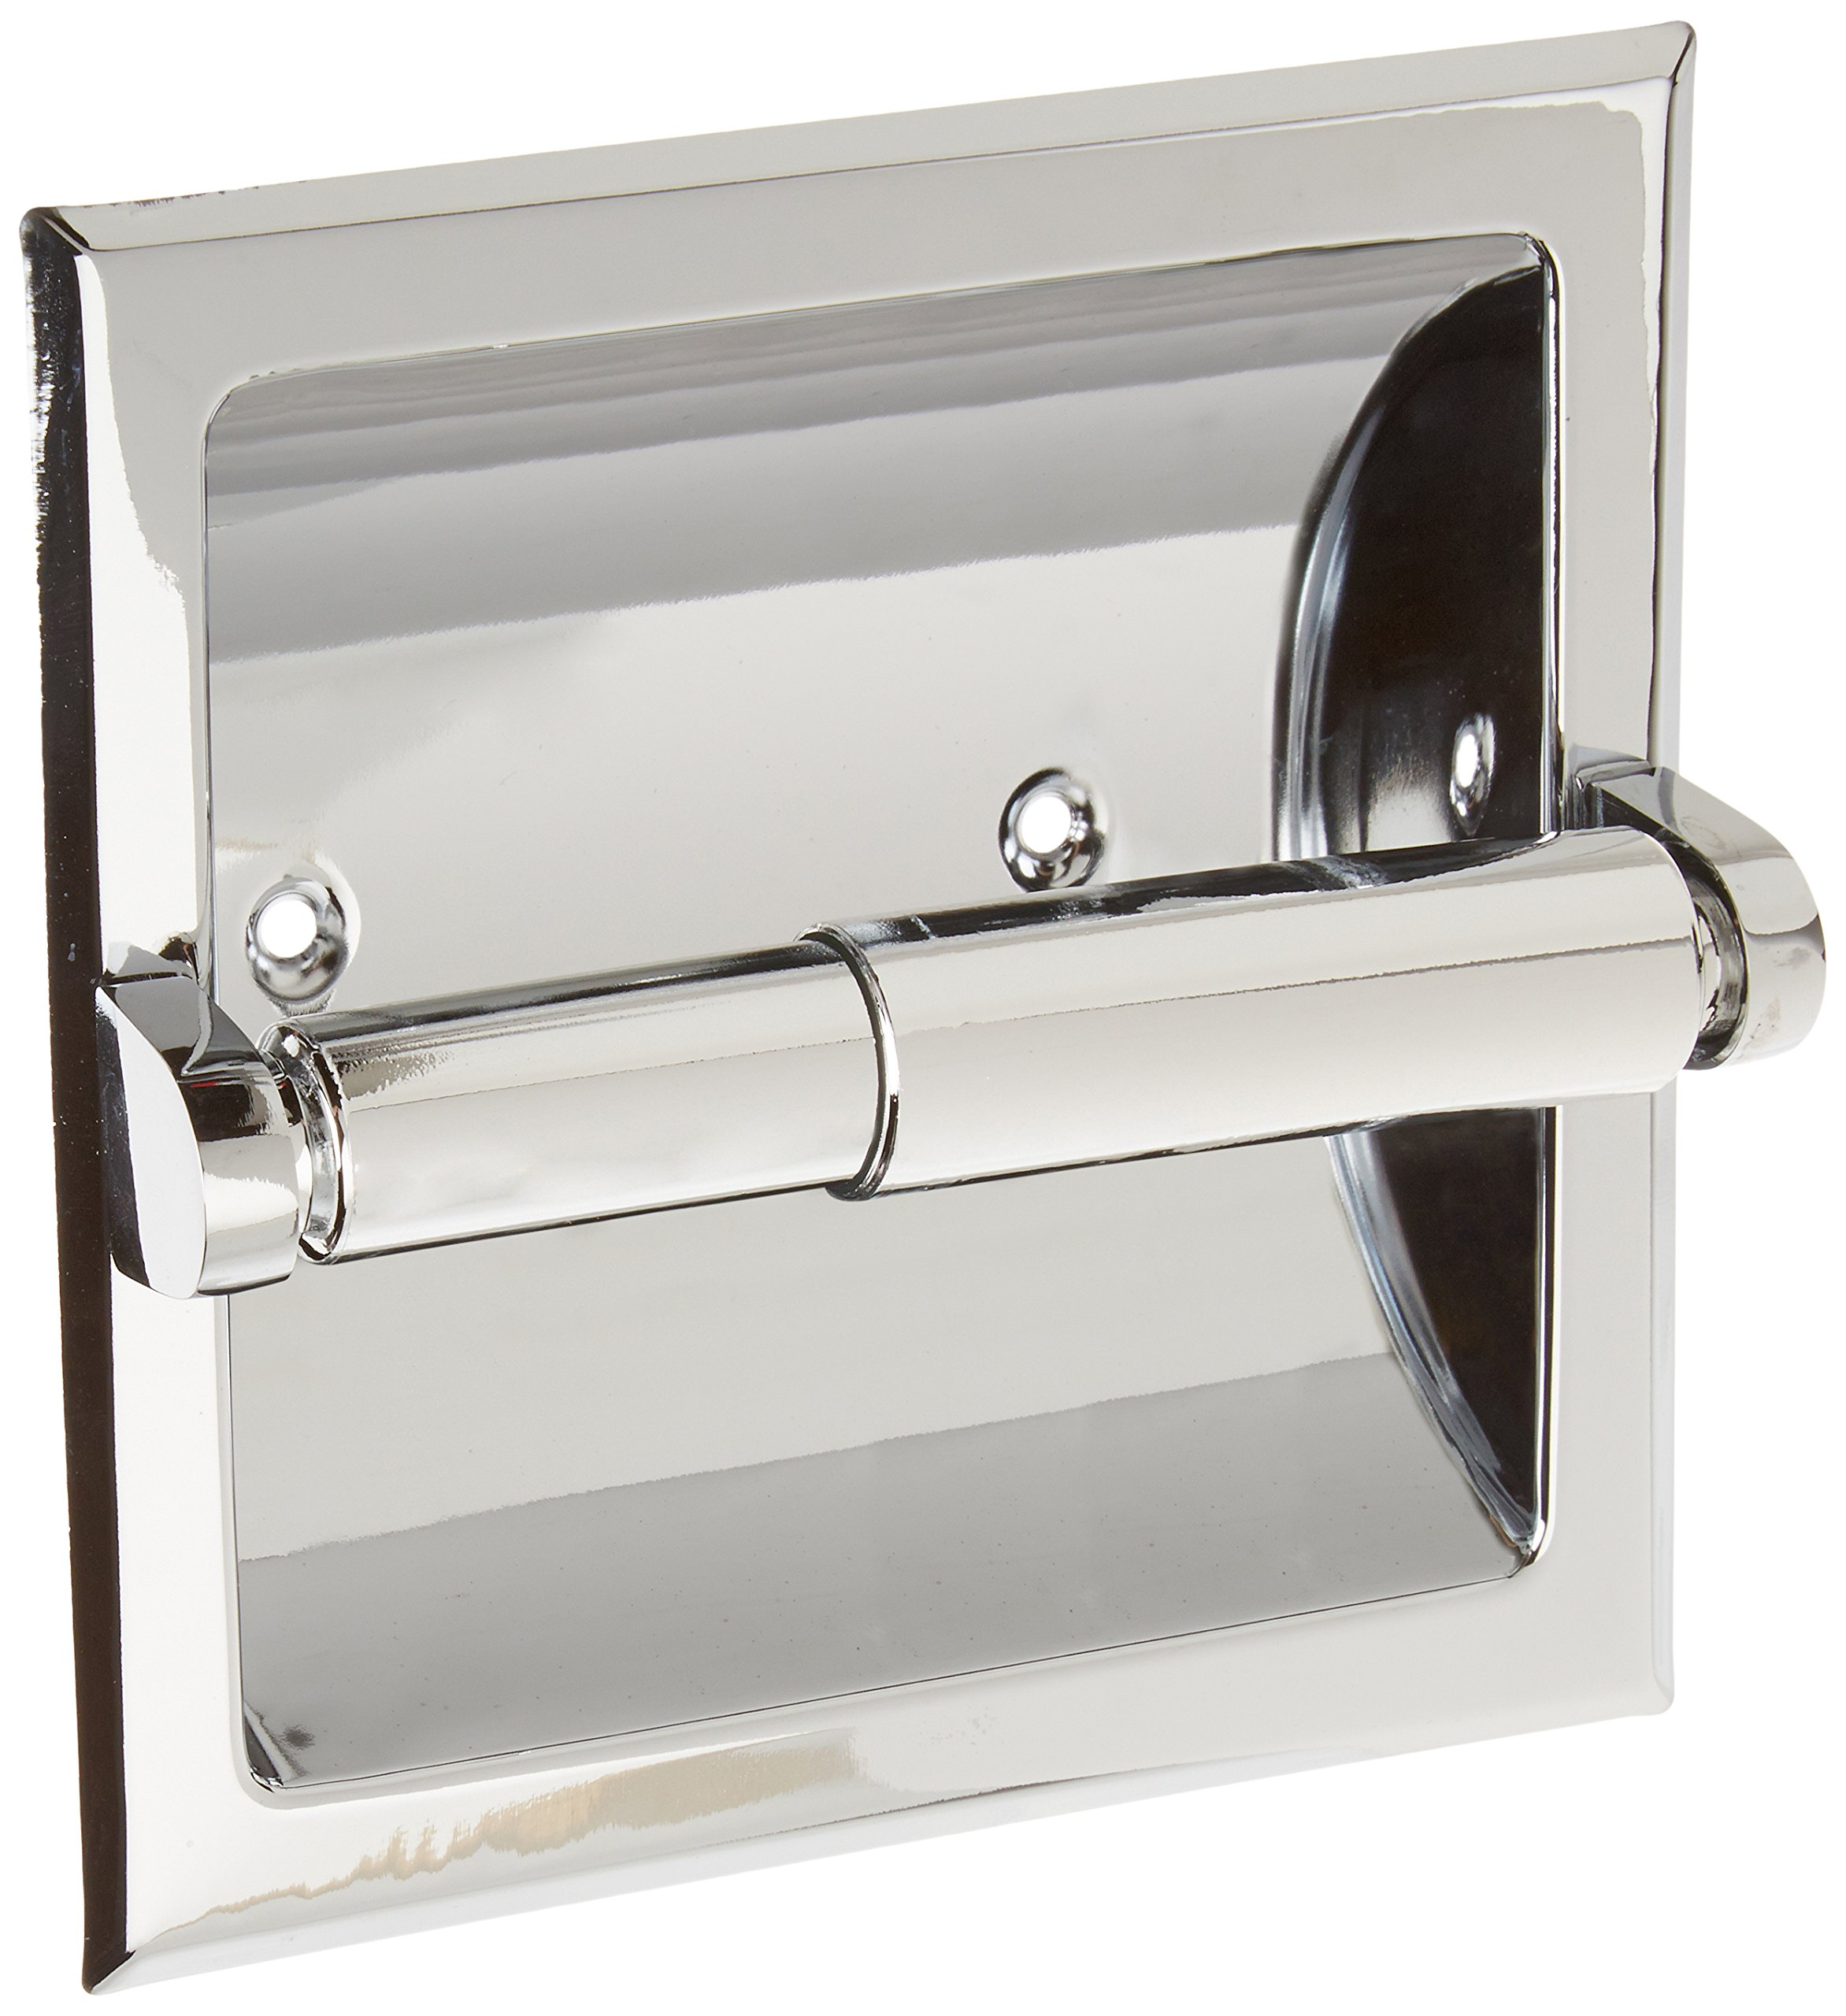 Moen 575 Donner Collection Recessed Paper Holder, Chrome